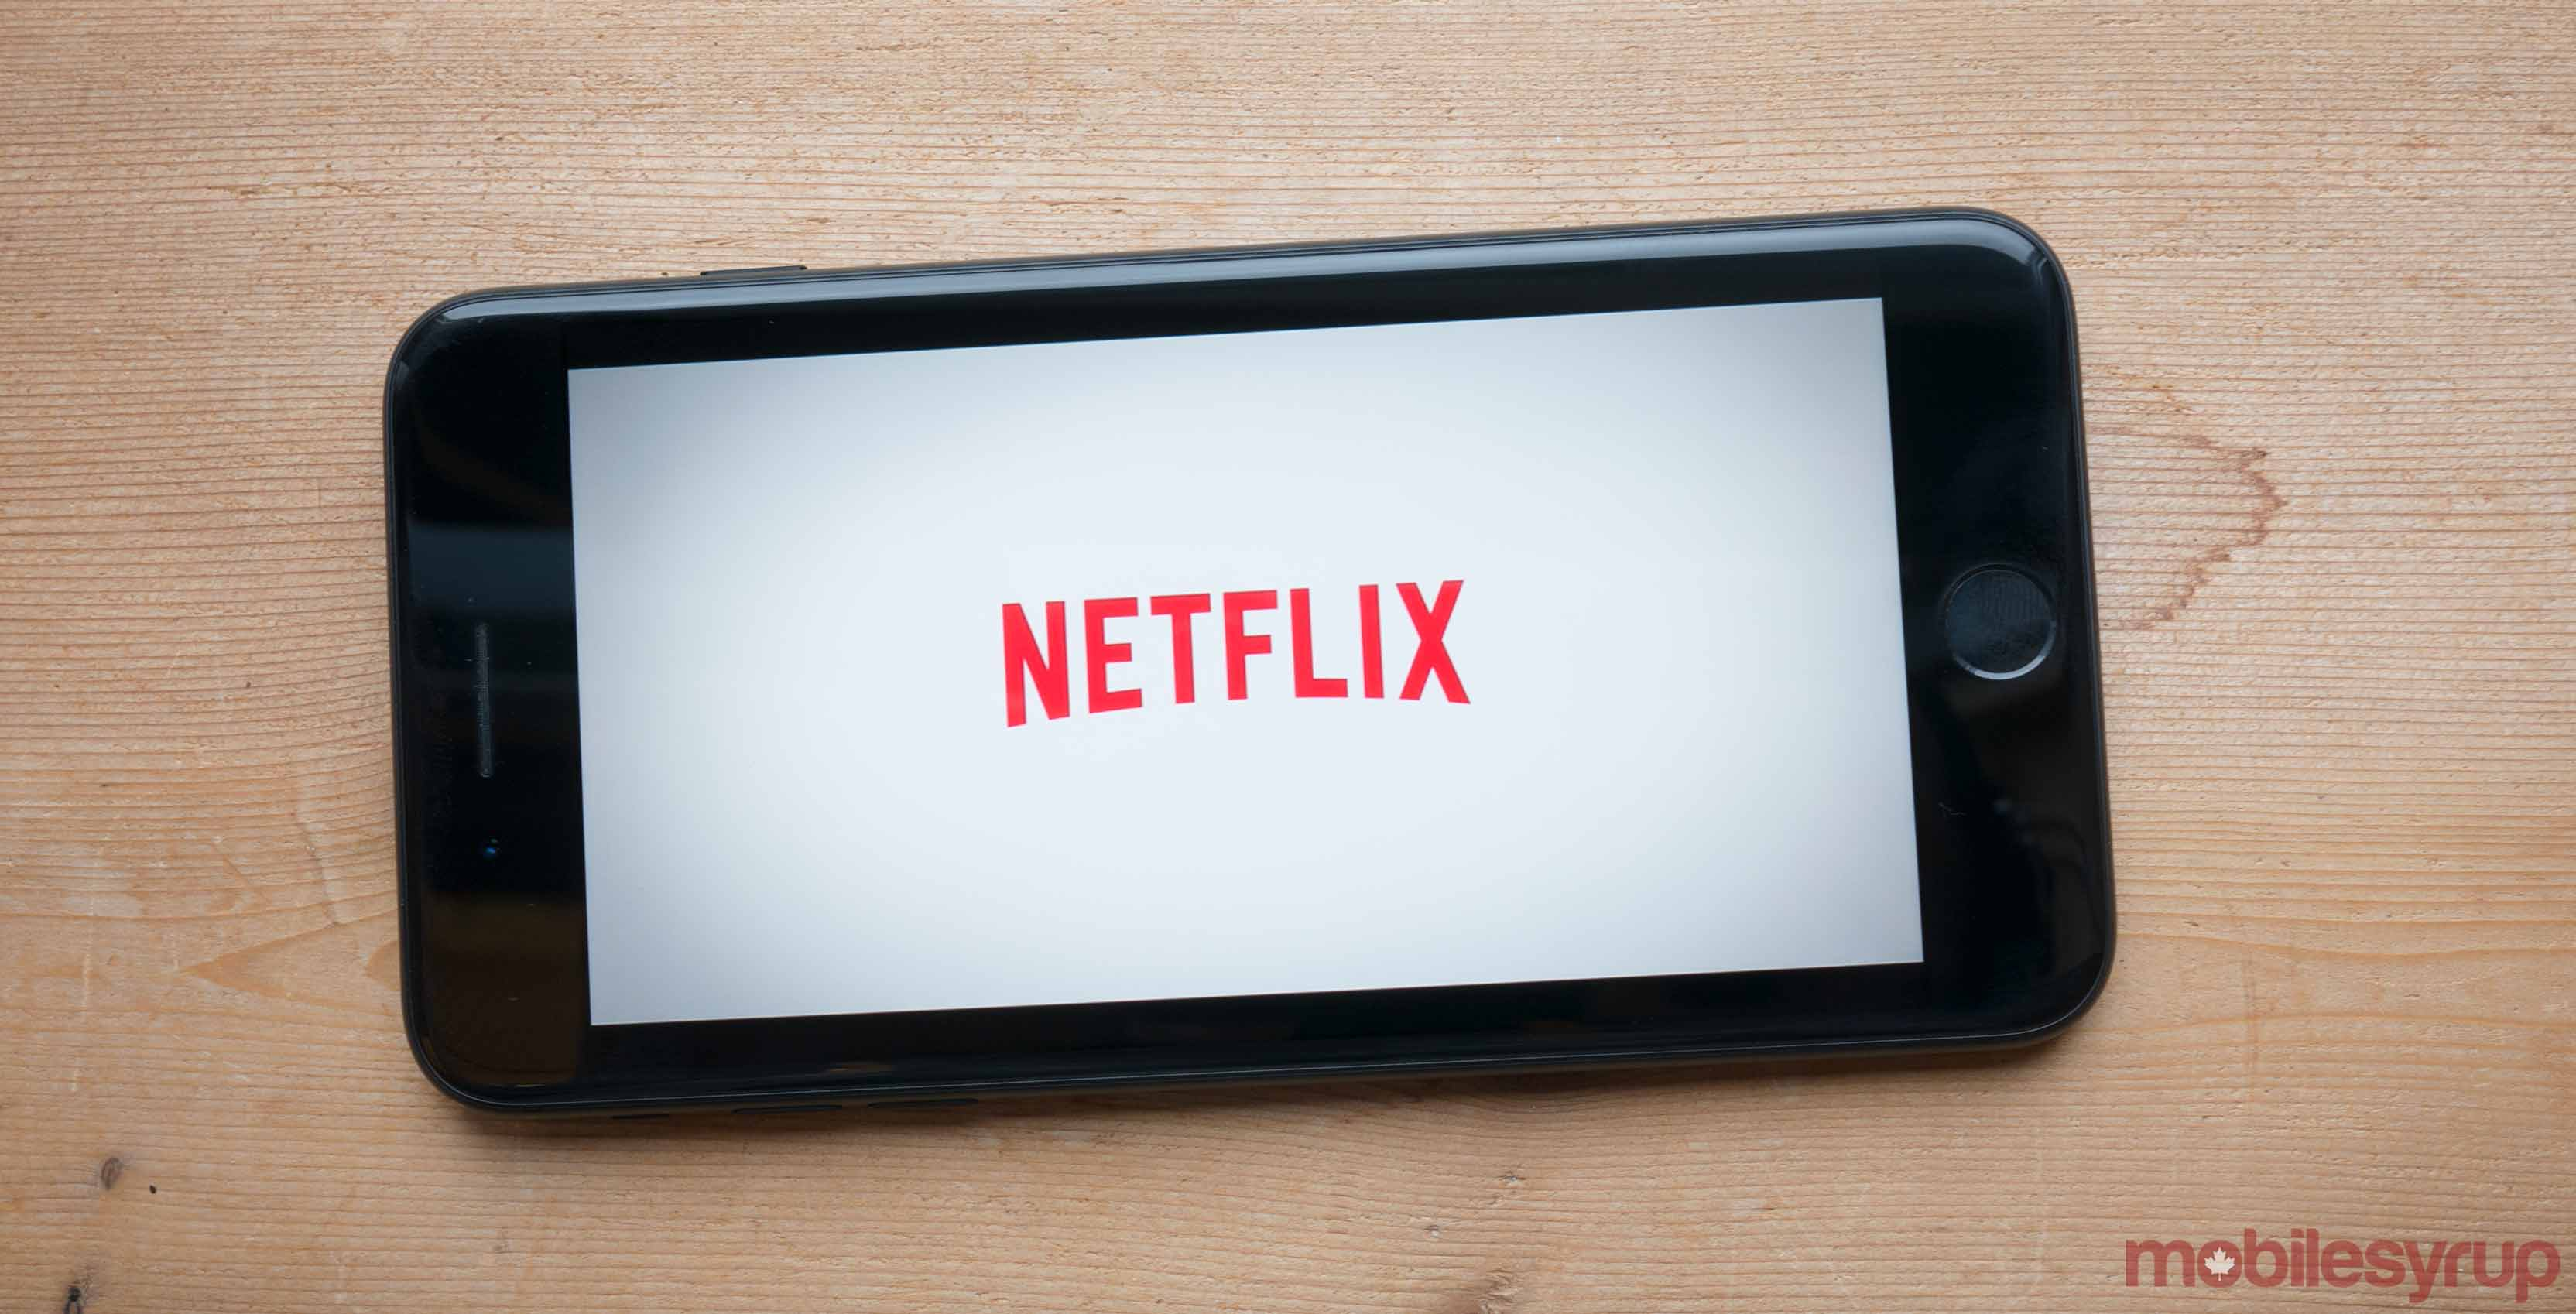 Netflix is bringing video previews to its iOS & Android apps